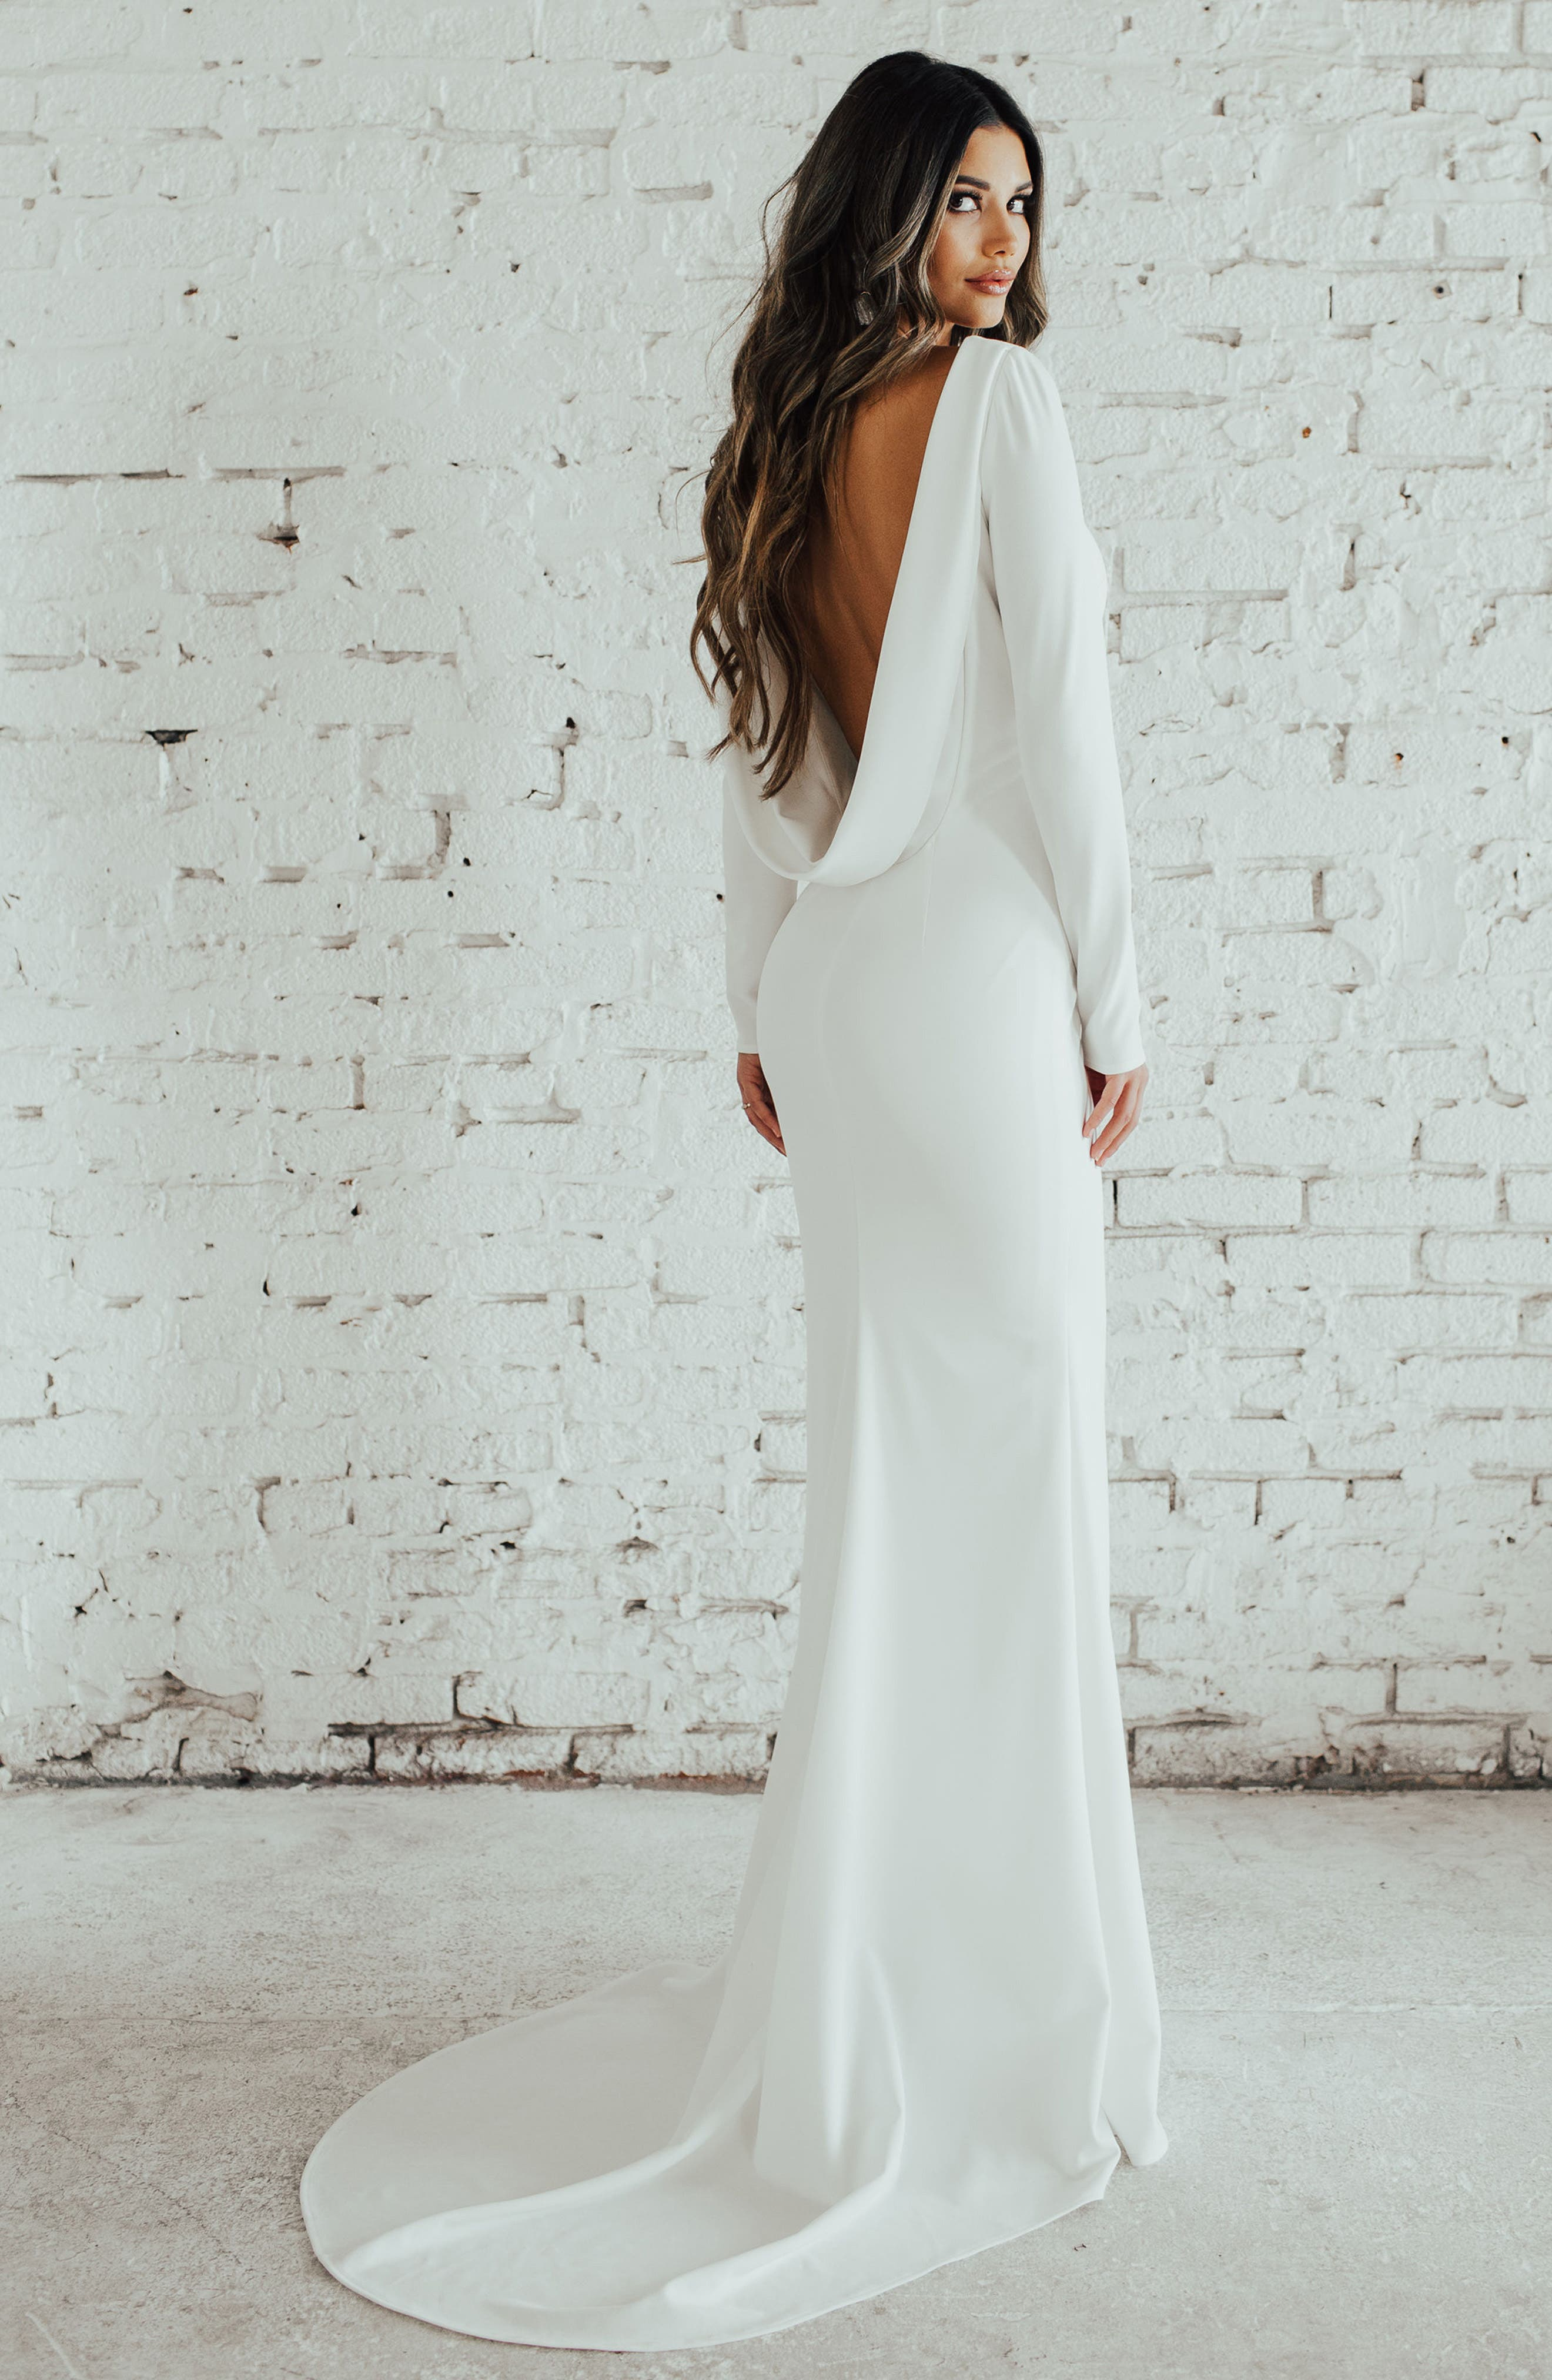 White Gown with Sleeves